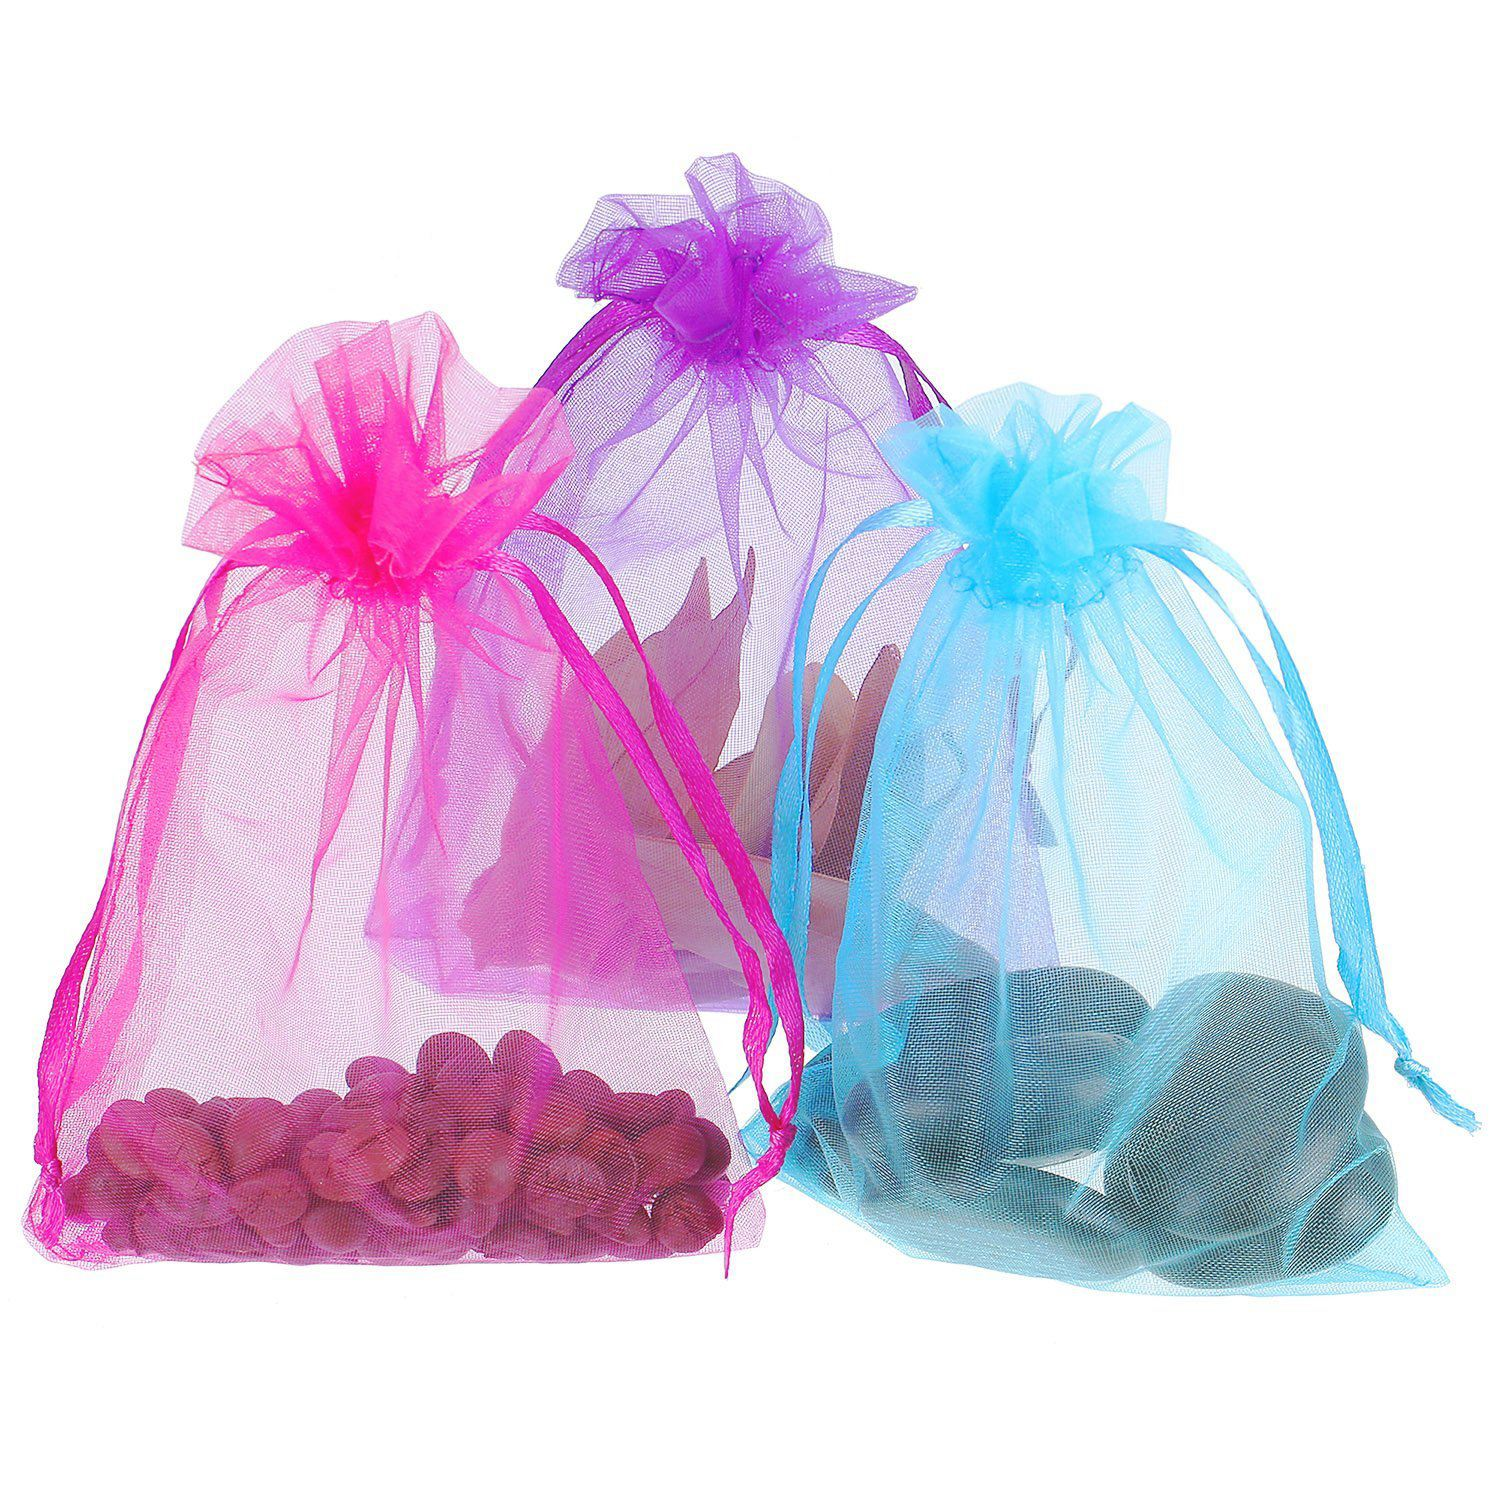 50x 4 by 6 Inch Organza Gift Bags Drawstring Jewelry Pouches Favor ...